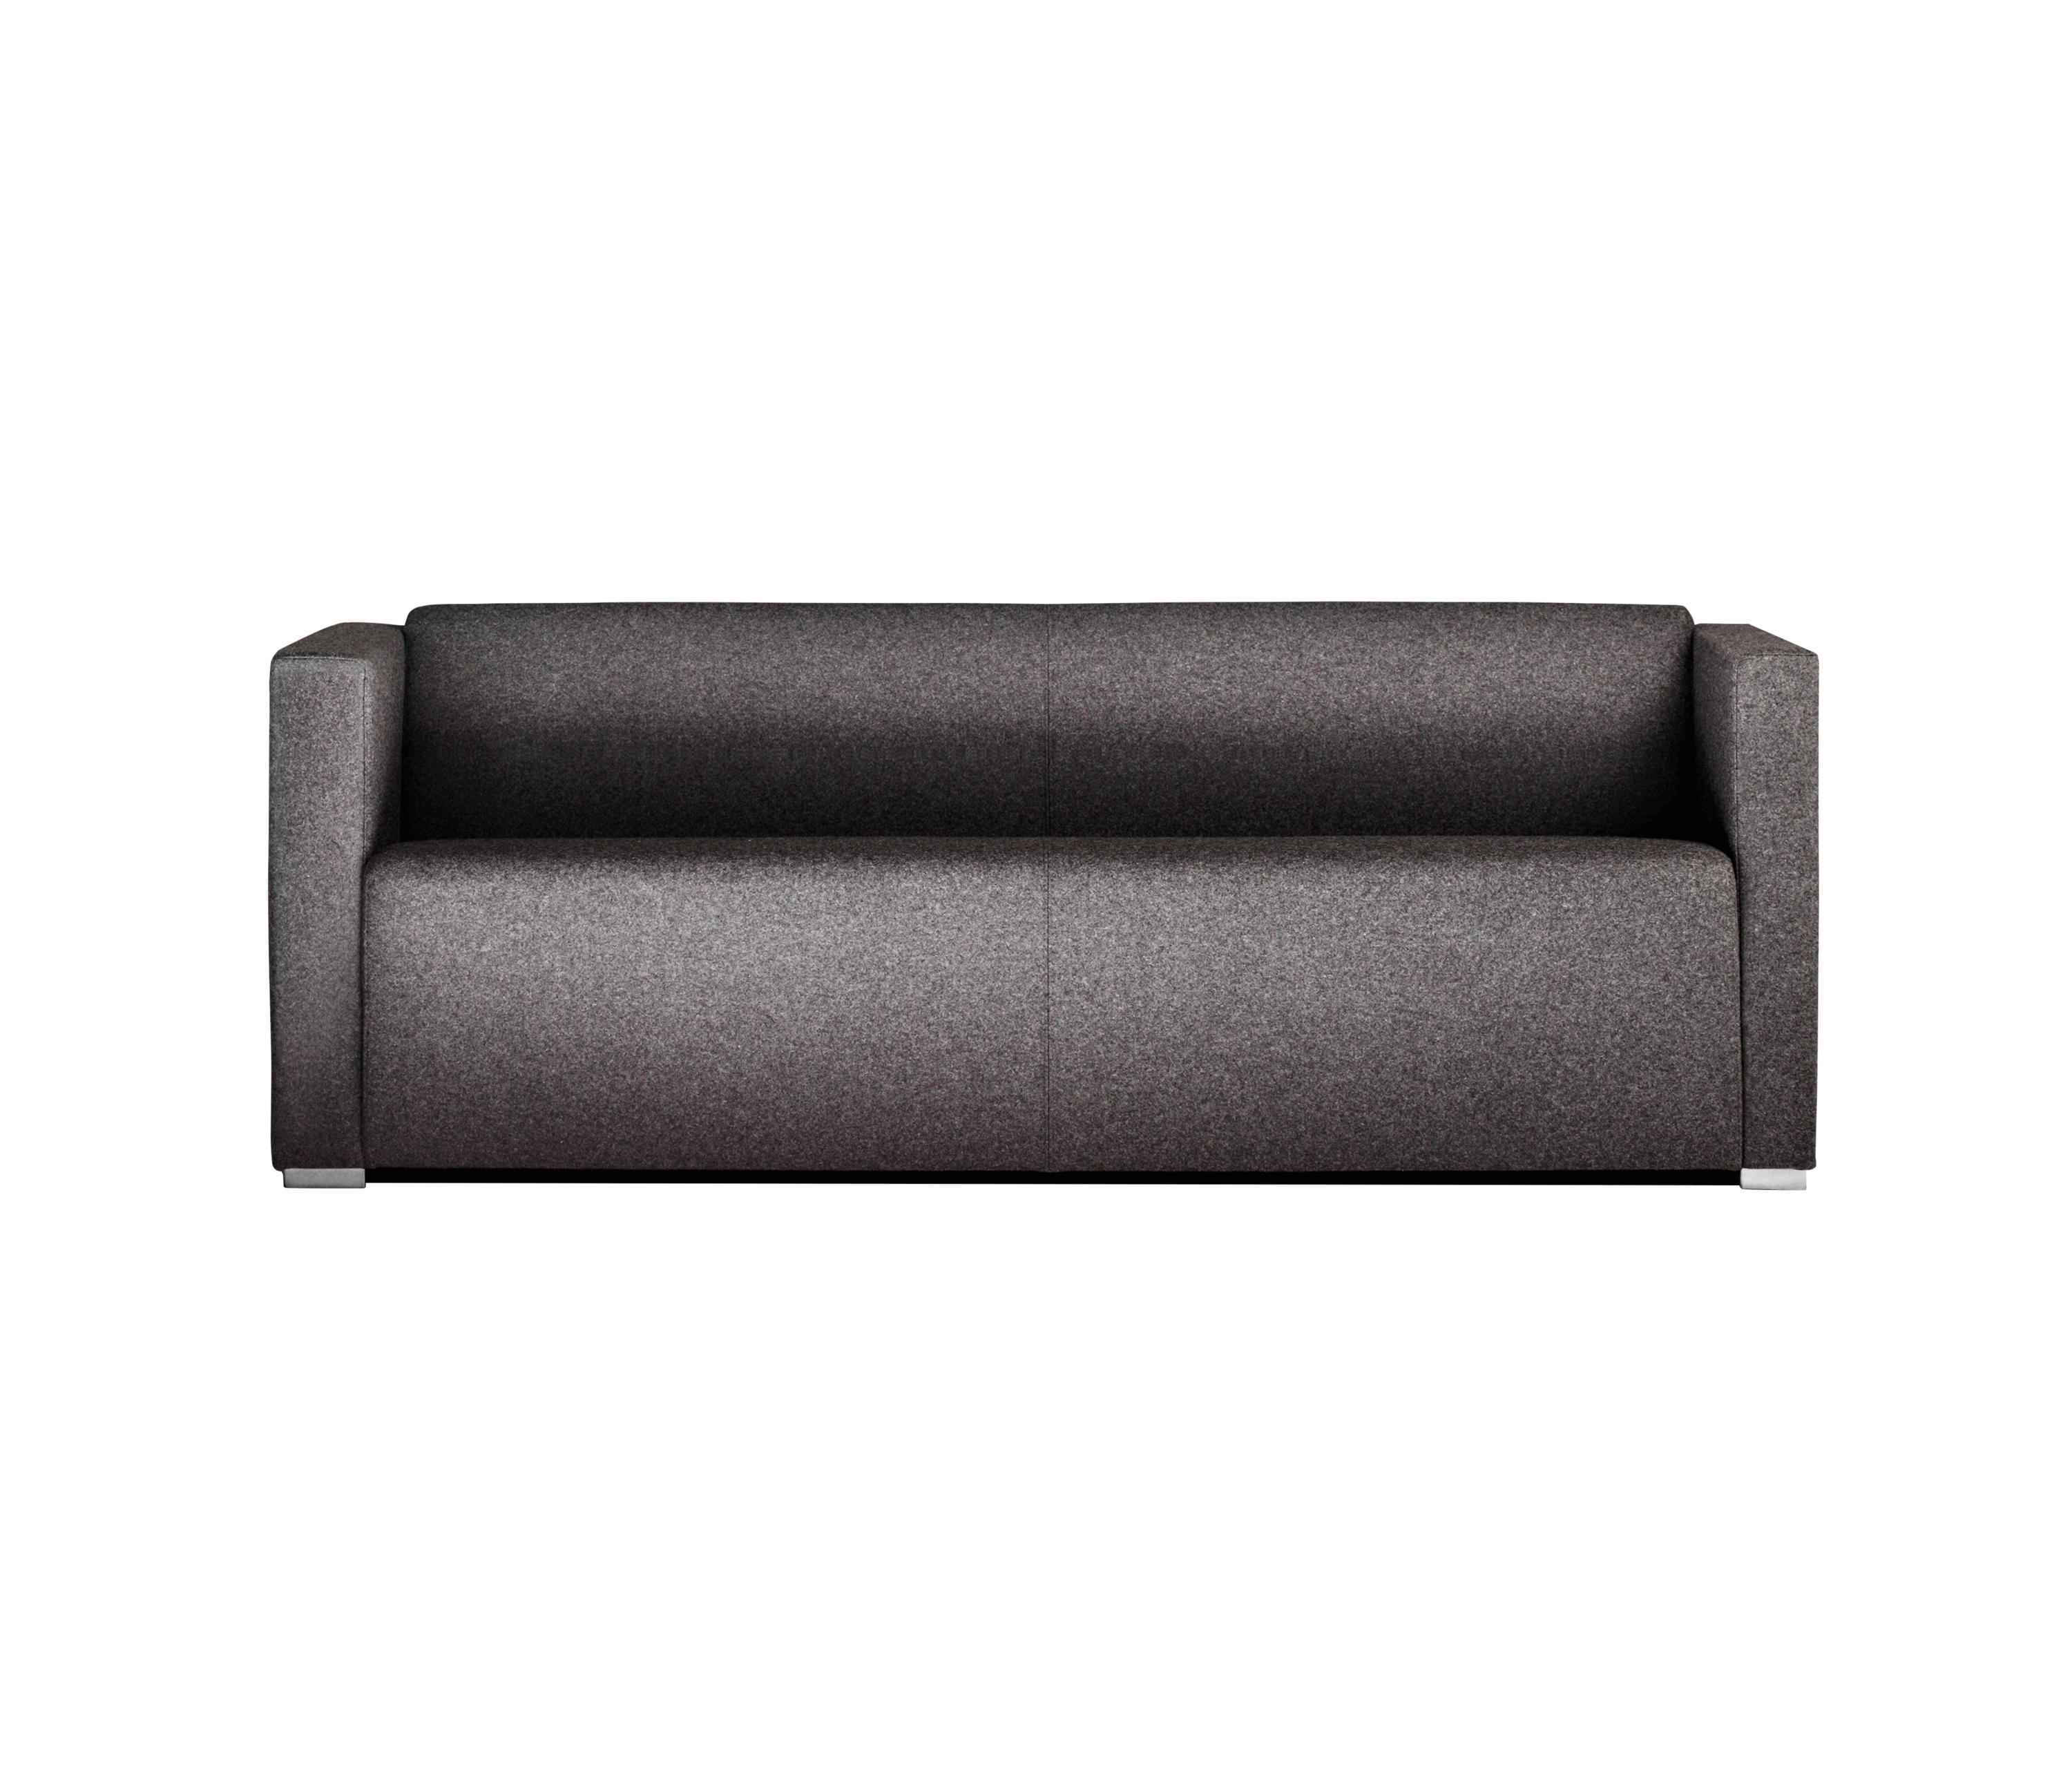 CUBUS Lounge sofas from La Cividina